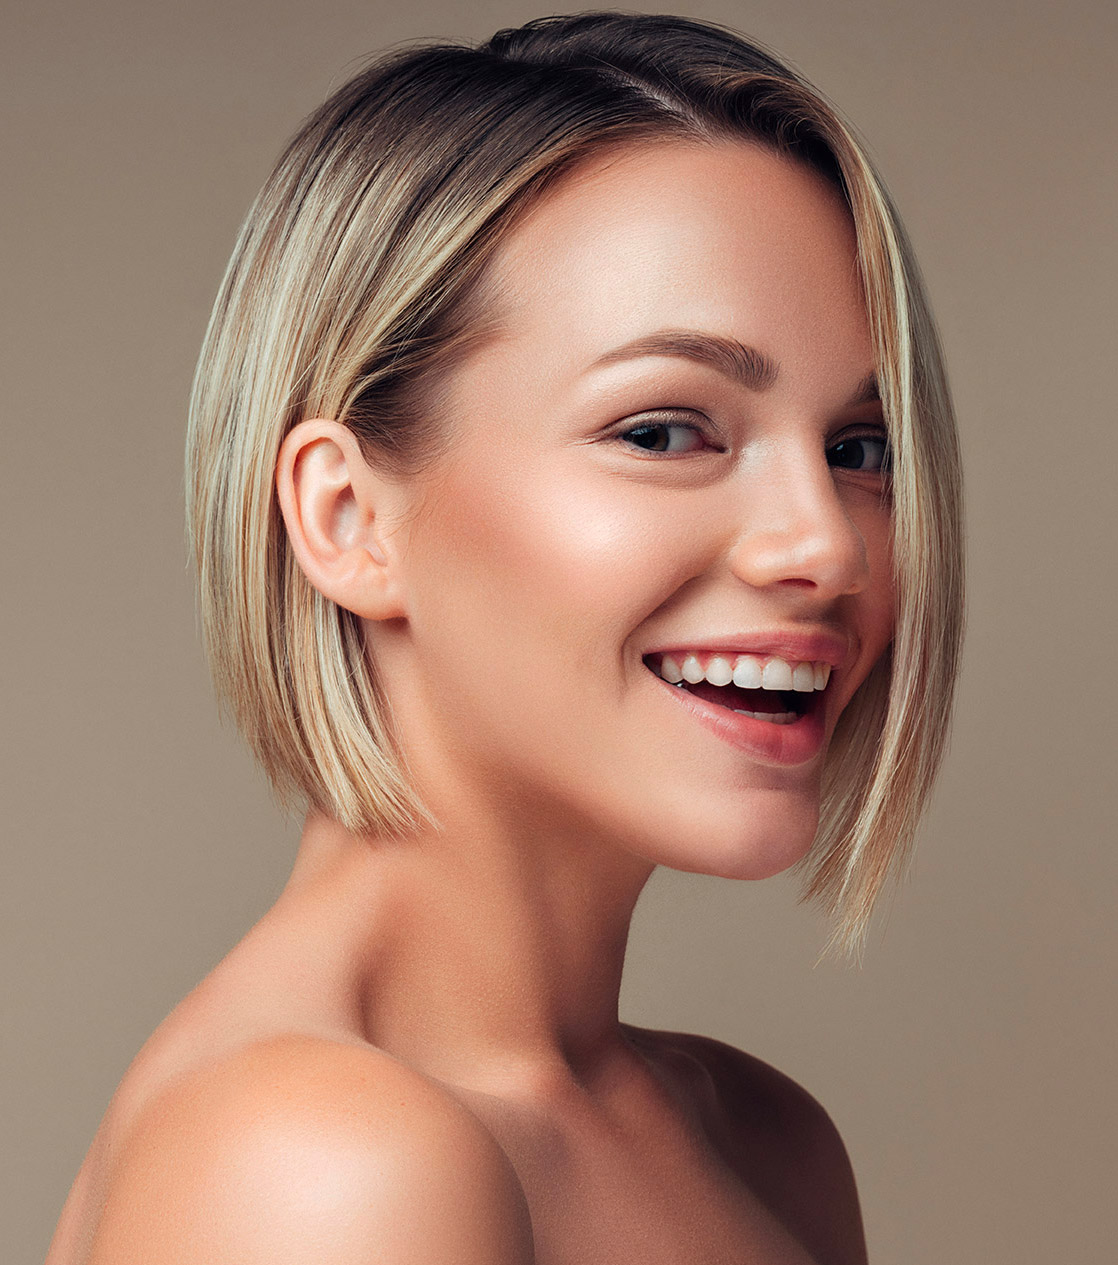 woman with short blonde hair smiling